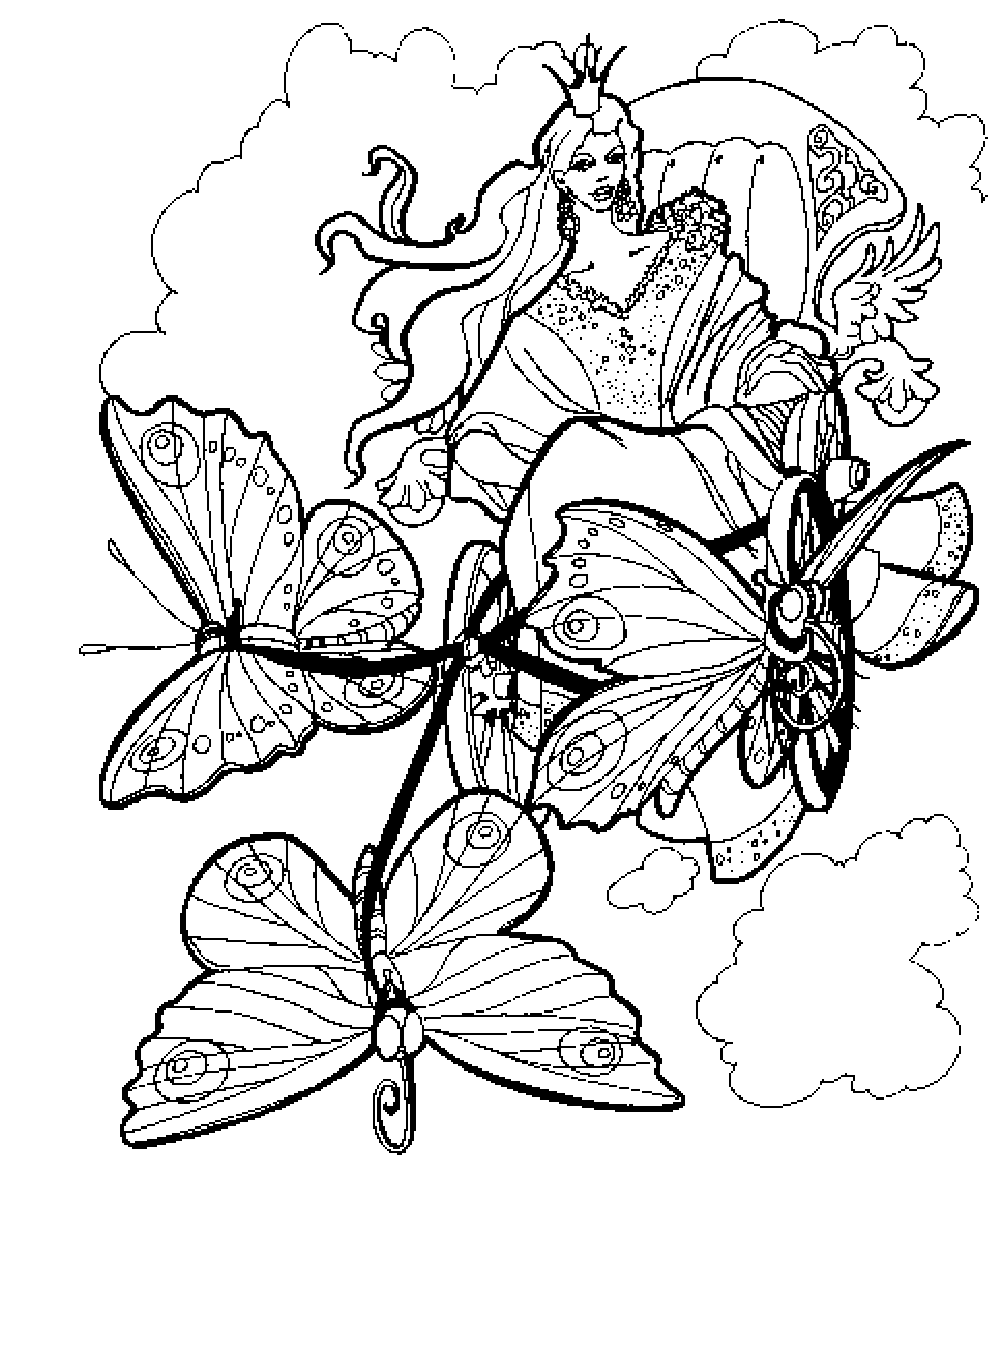 colouring pages for adults to print fairy coloring pages for adults printable kids colouring pages - Free Printable Color Pages For Adults